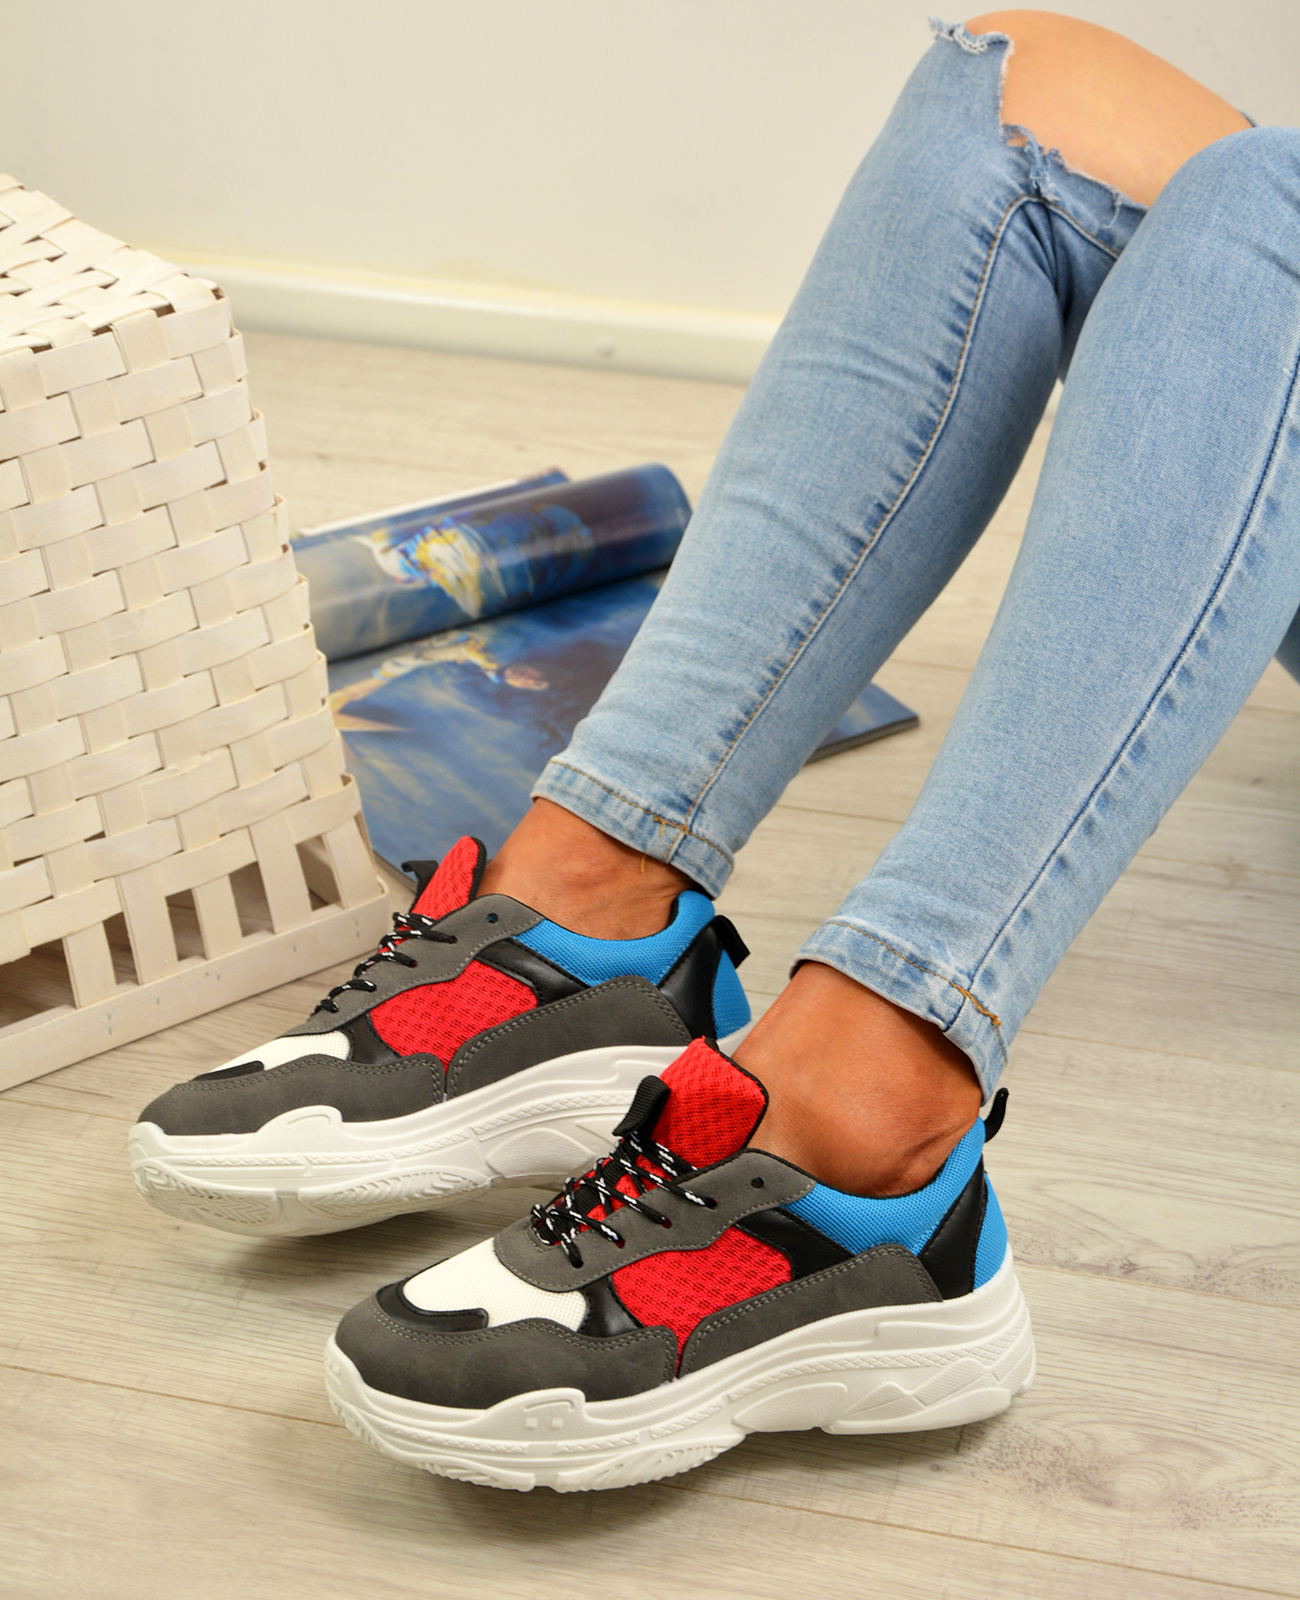 Femme-Running-Gym-Baskets-a-Lacets-Baskets-Tennis-Chaussures-Tailles-UK miniature 12